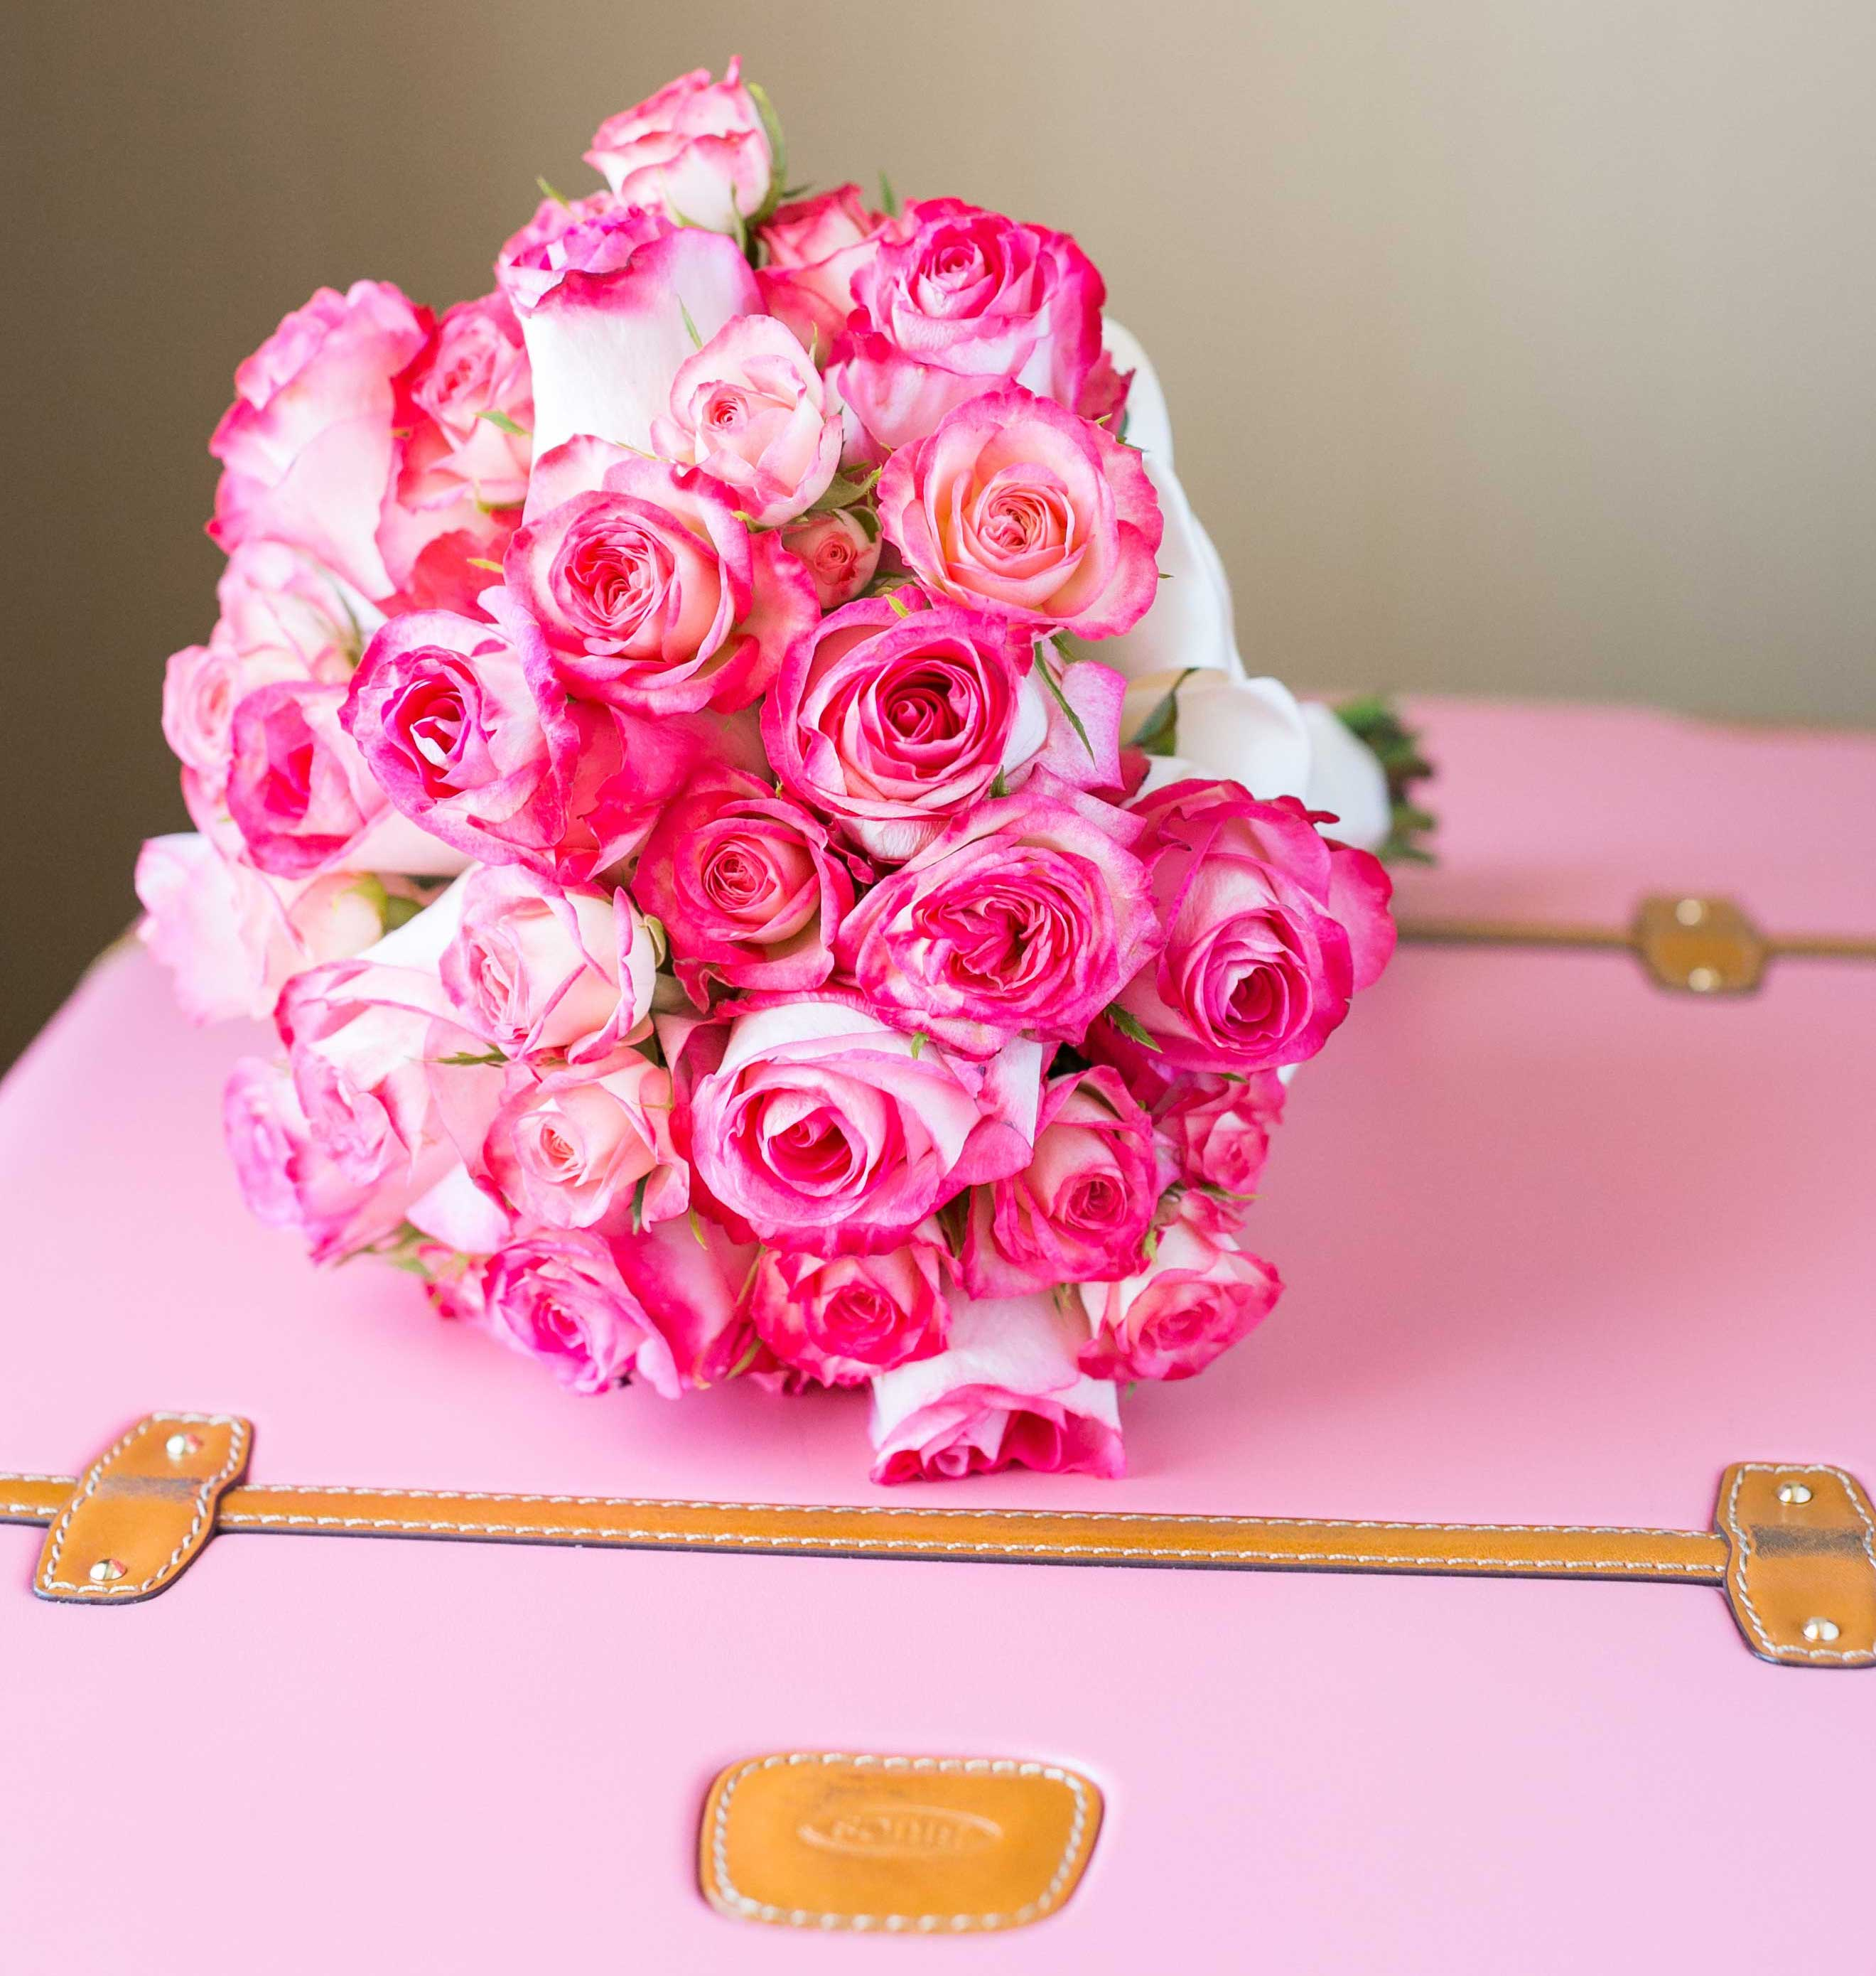 Pink rose bouquet on pink luggage wedding ideas